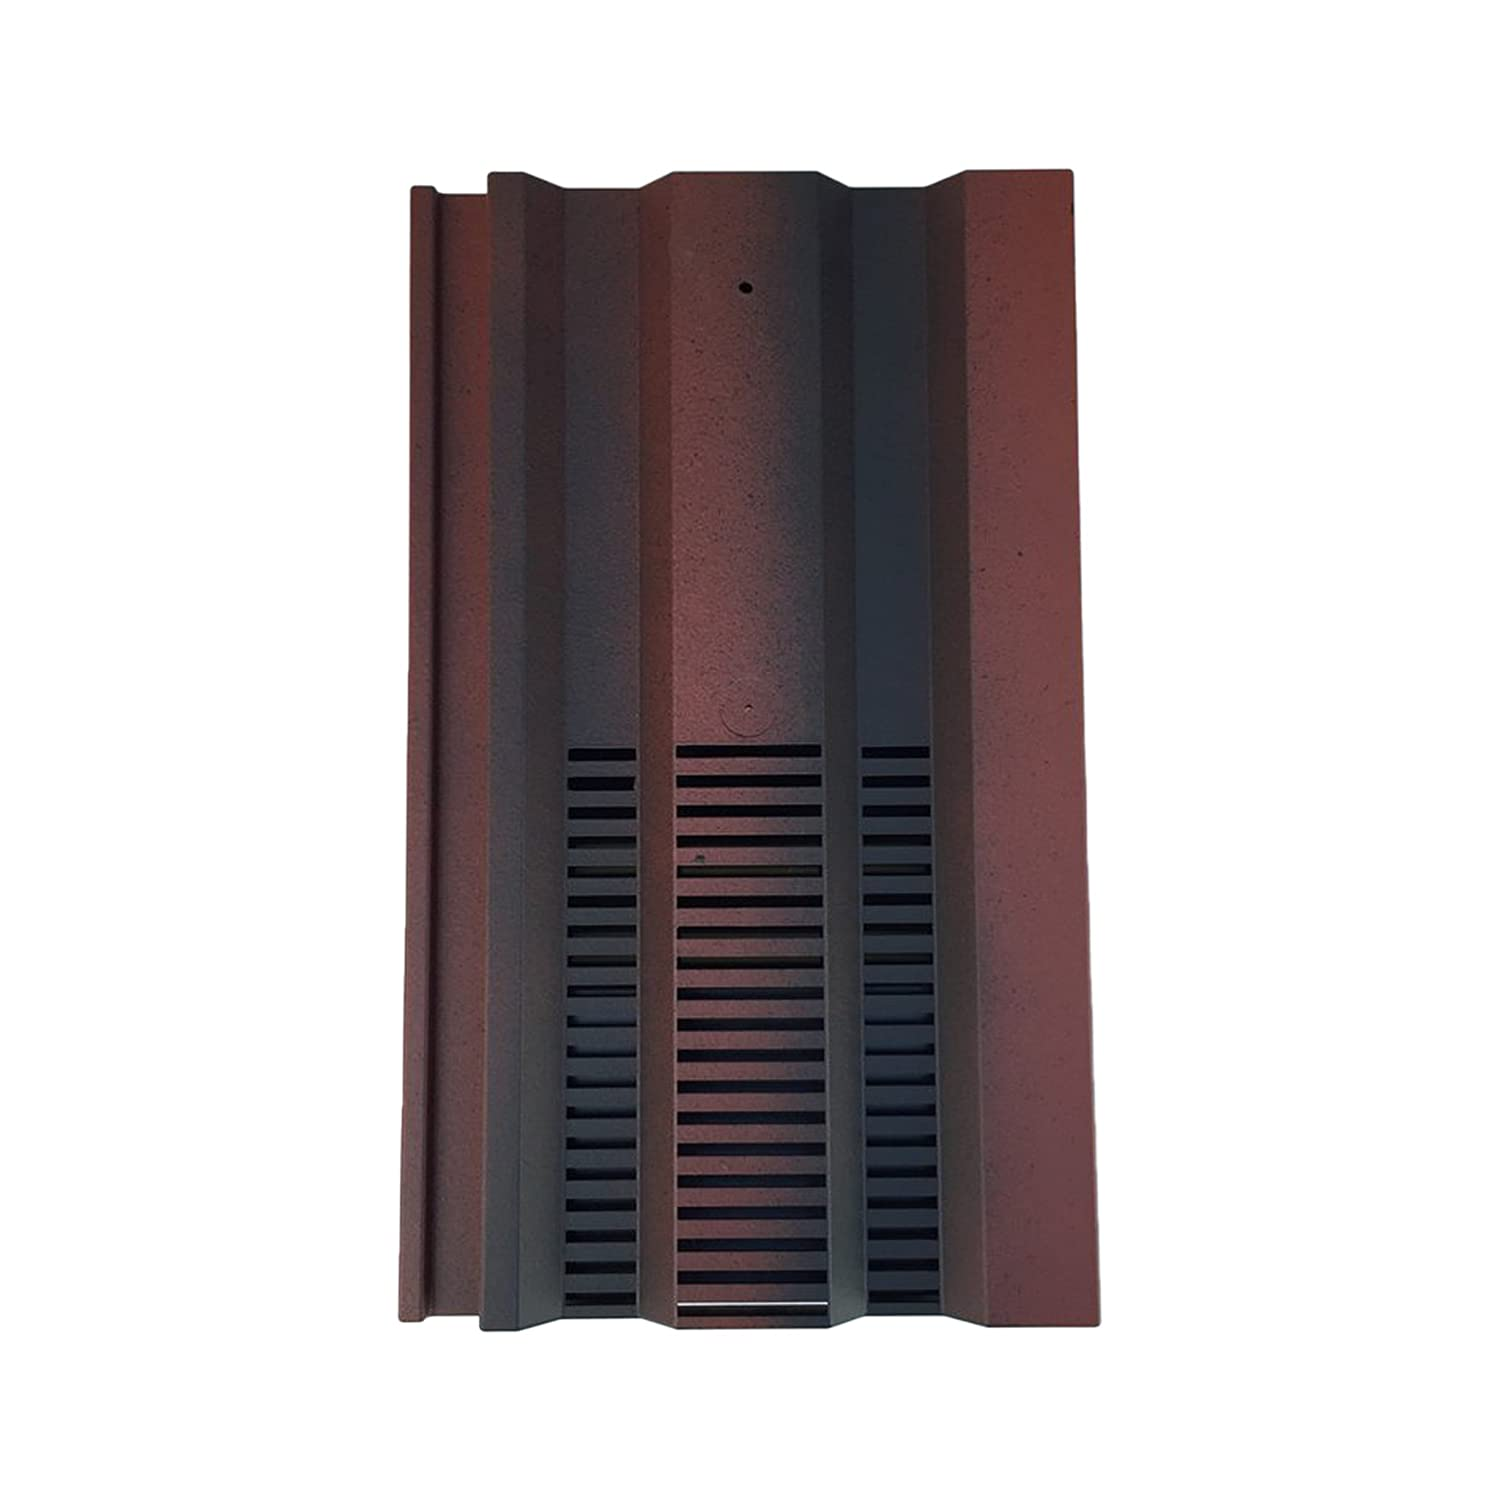 Redland 49 Forticrete V2 15 X 9 Format With Pipe Adaptor For Extractor Hose Connection Available In 14 Colours Beddoes Products Roof Tile Vent To Fit Marley Ludlow Plus Black Smooth Vents